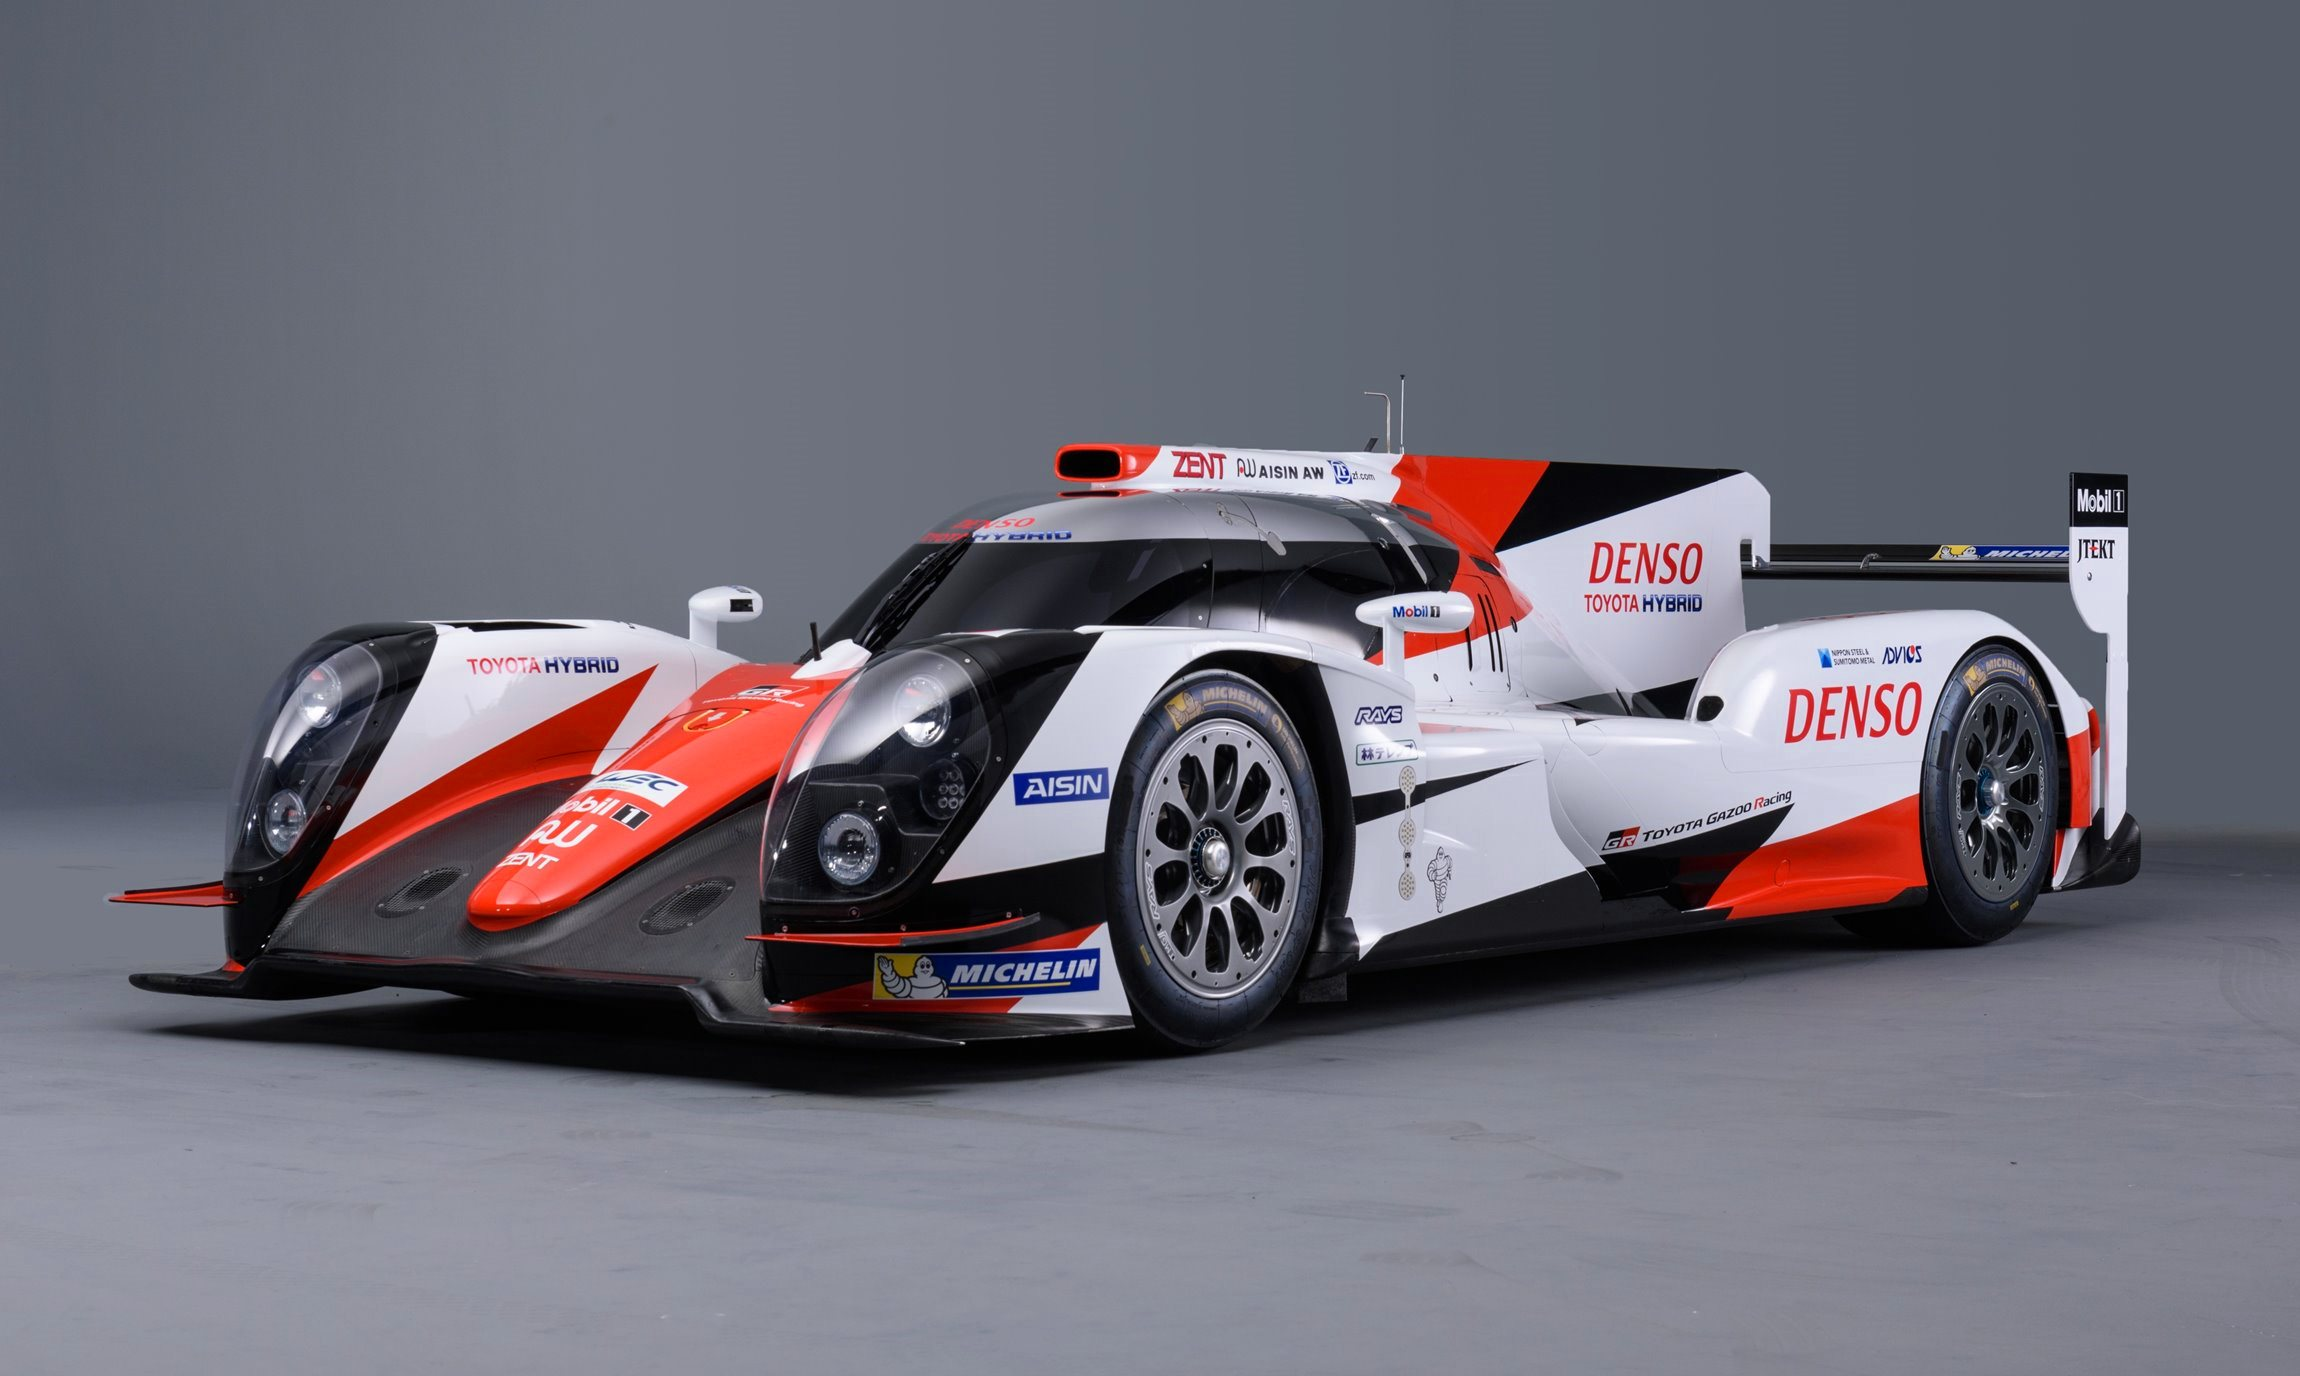 2016 Toyota GAZOO Racecars & Series Preview - New TS050 LMP1 ...